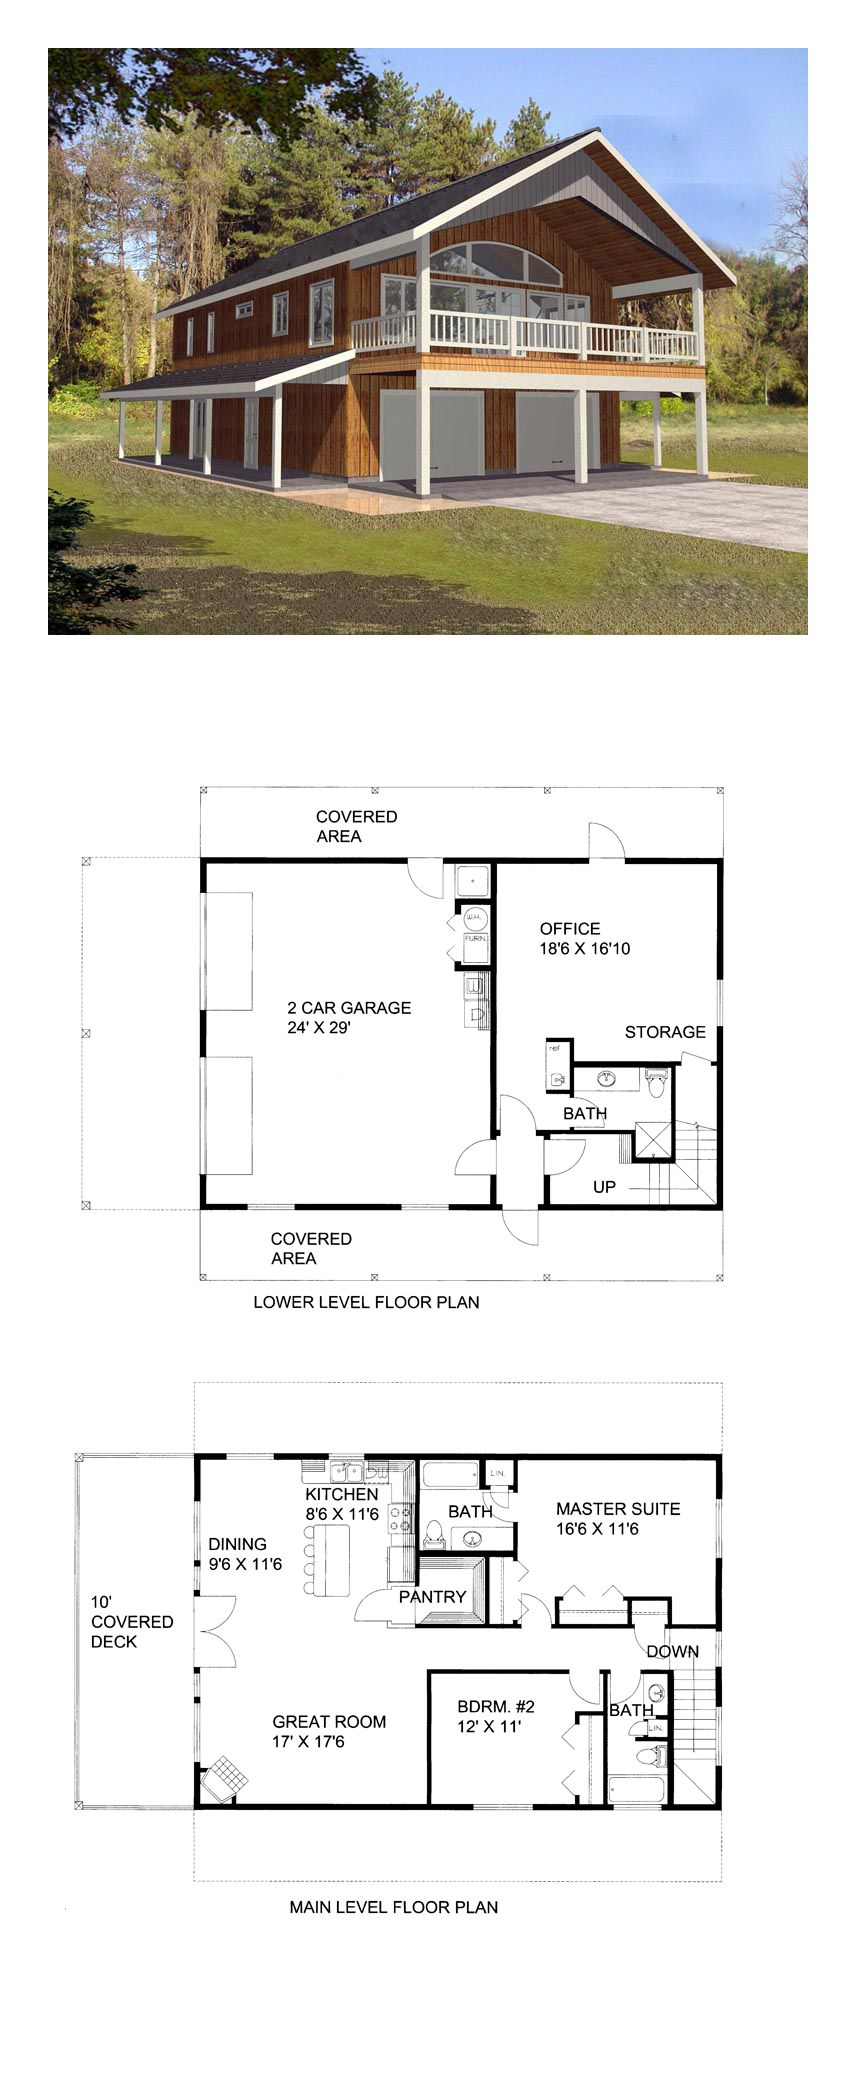 Garage apartment plan 85372 total living area 1901 sq for Garage apartment plans 1 story